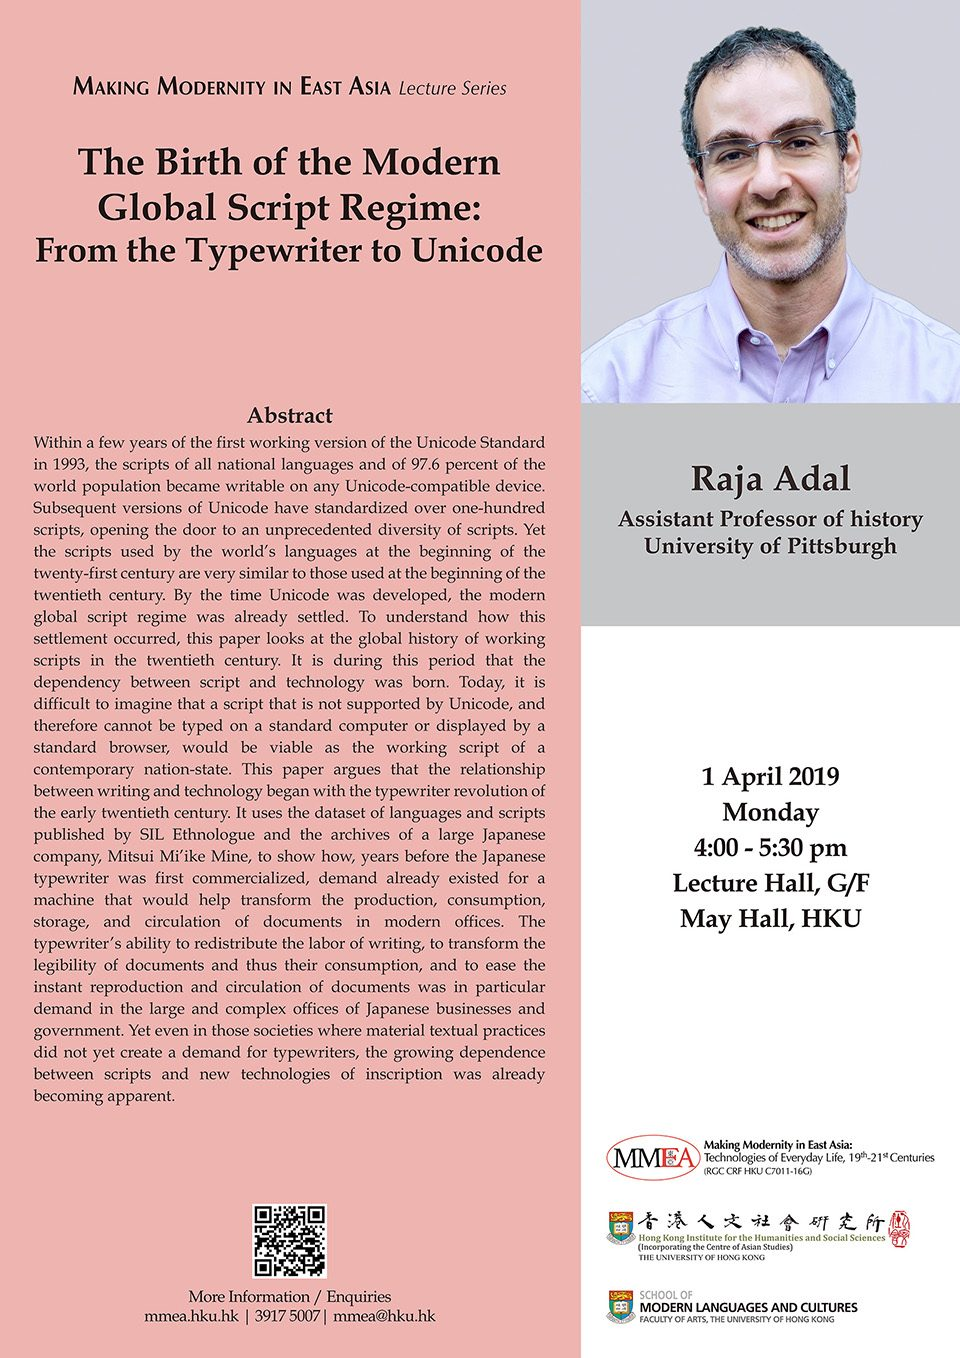 "MMEA Lecture Series ""The Birth of the Modern Global Script Regime: From the Typewriter to Unicode"" by Dr. Raja Adal (April 1, 2019)"